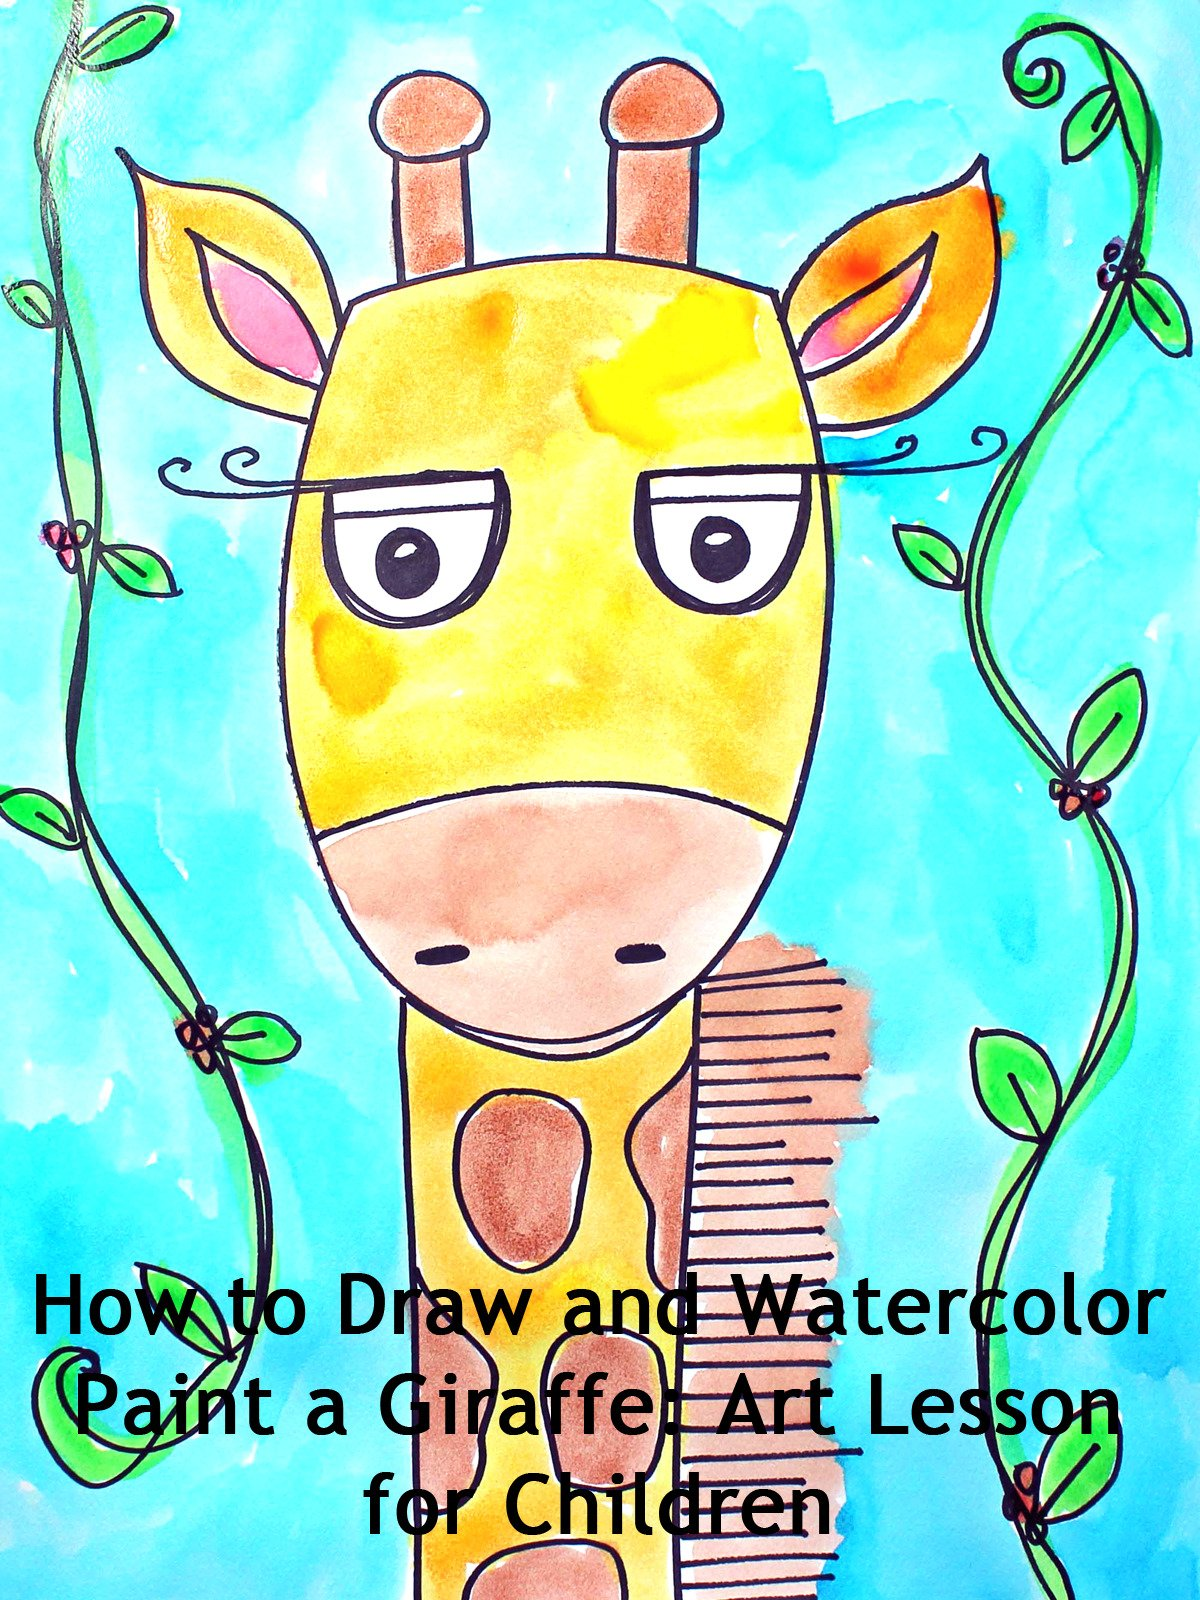 How to Draw and Watercolor Paint a Giraffe: Art Lesson for Children